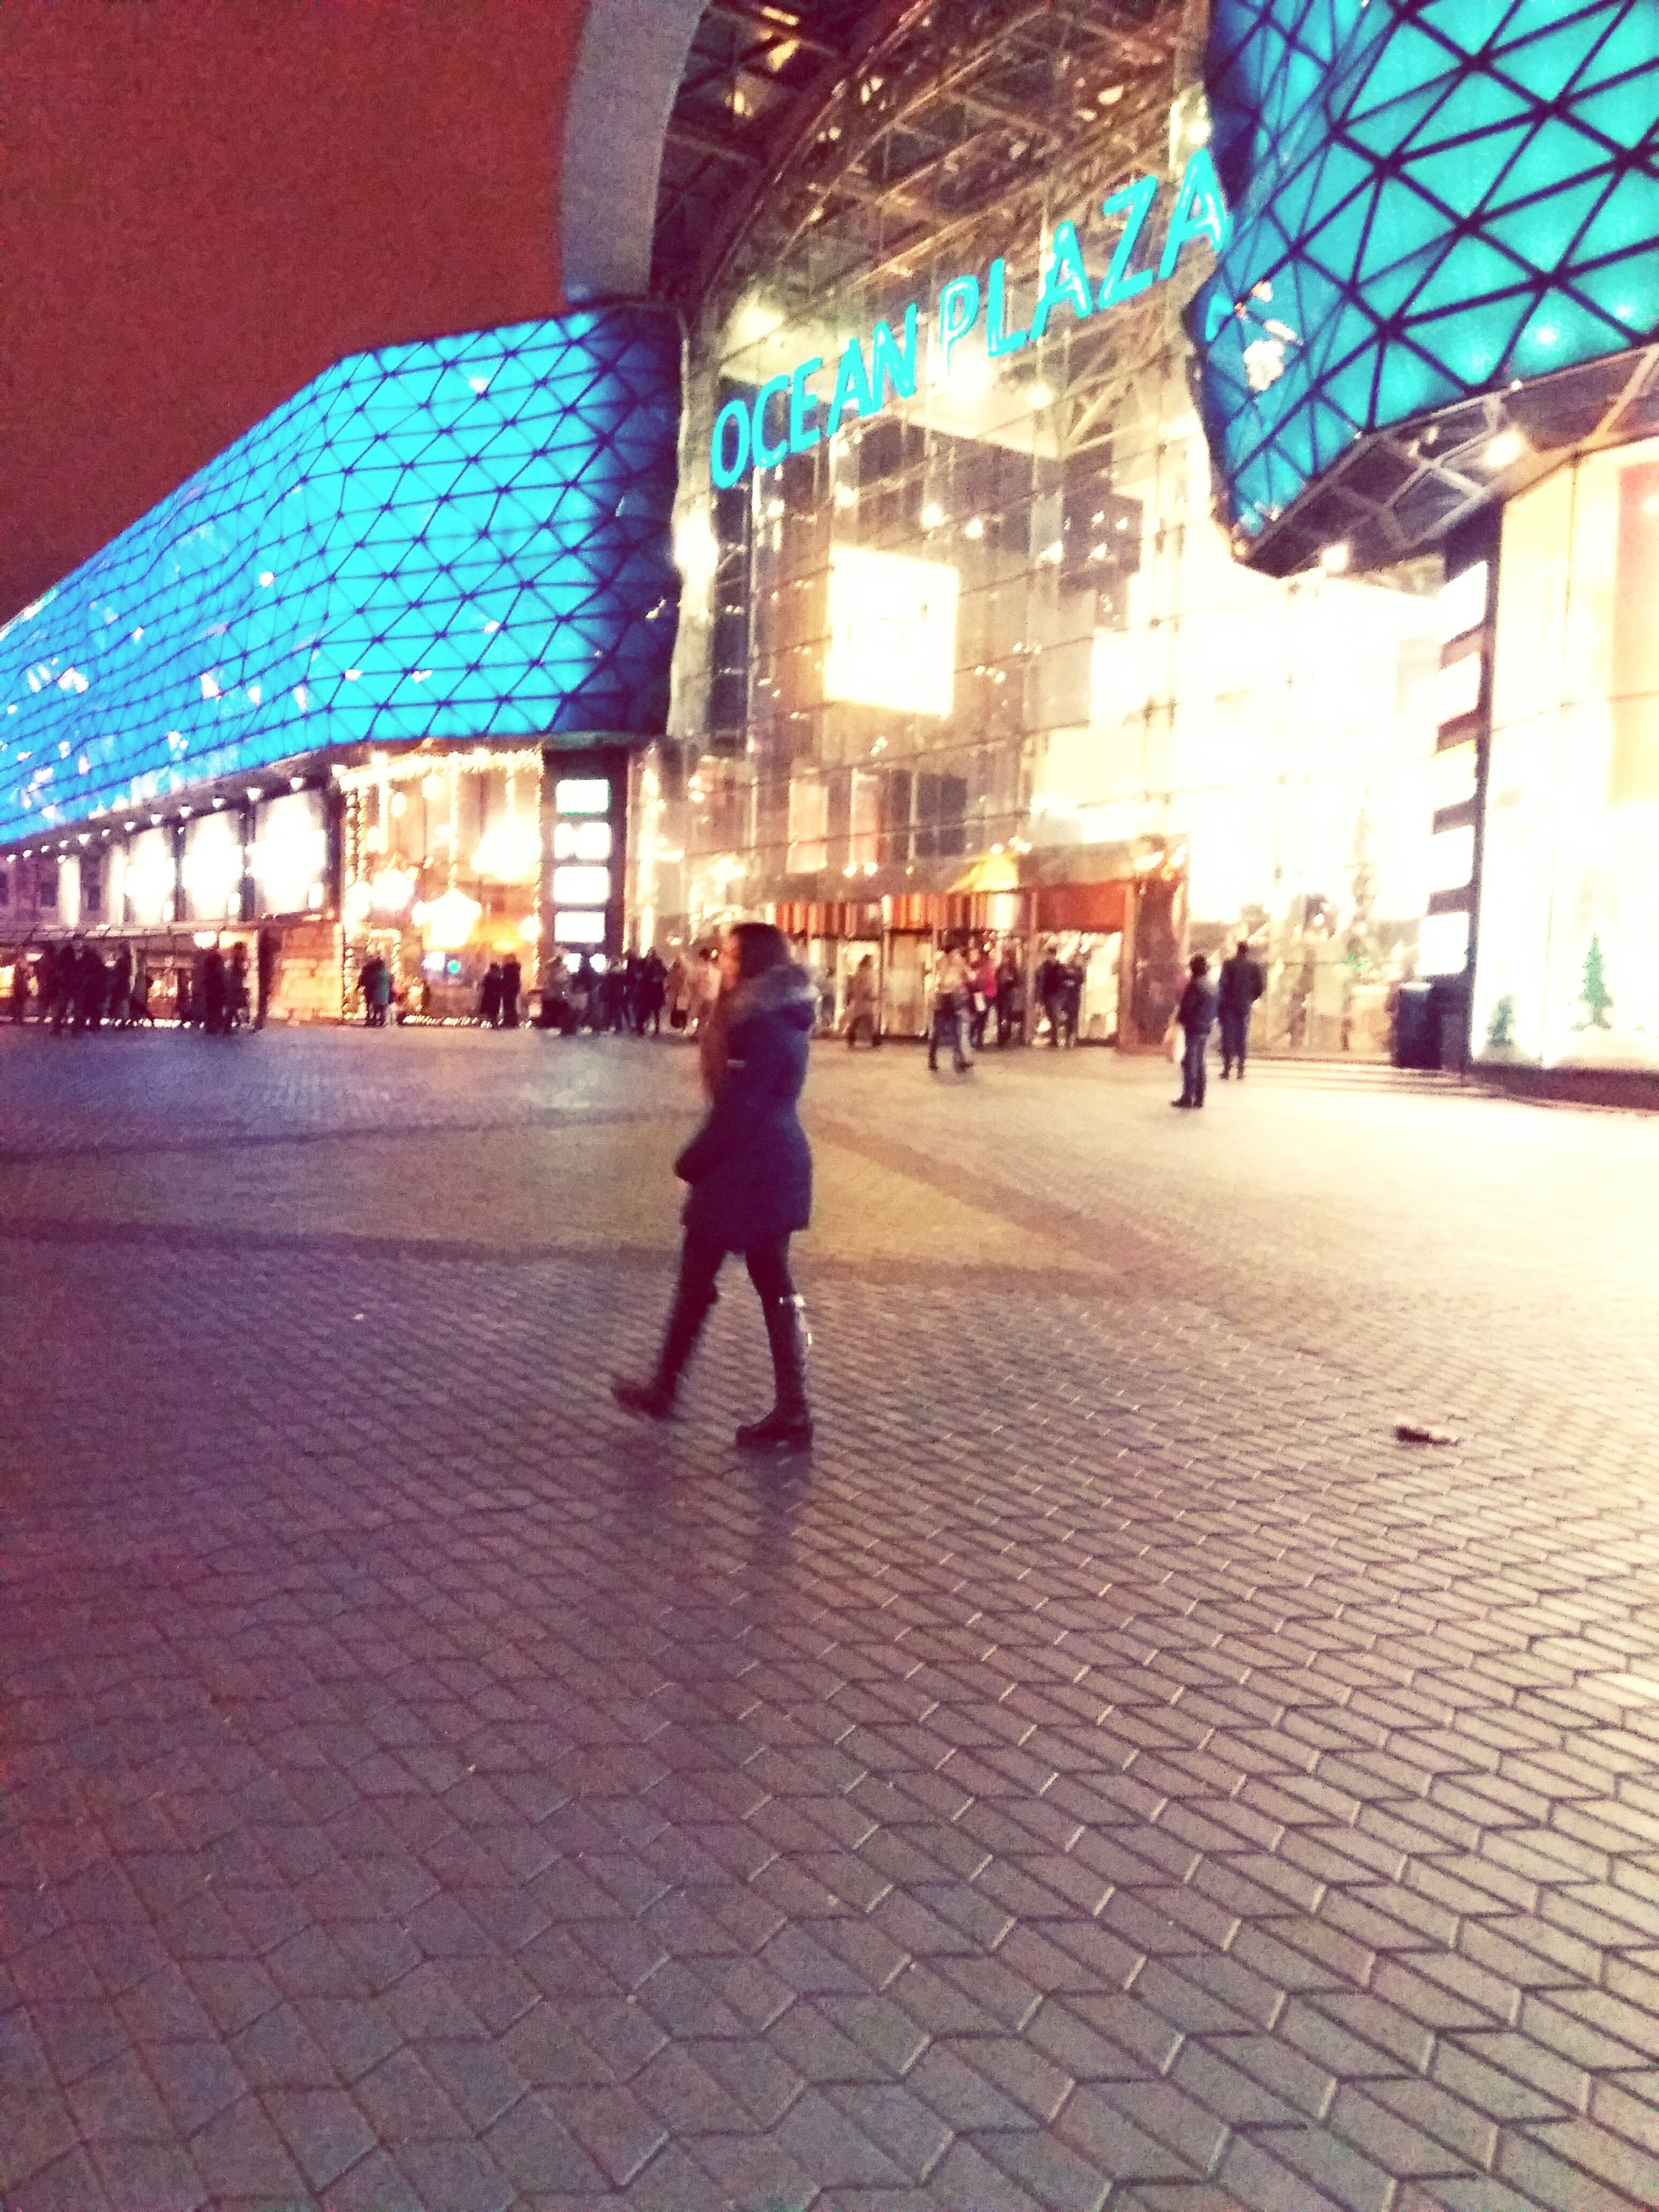 walking, illuminated, built structure, architecture, city, lighting equipment, building exterior, real people, christmas, full length, night, men, outdoors, large group of people, people, adults only, adult, only men, ice rink